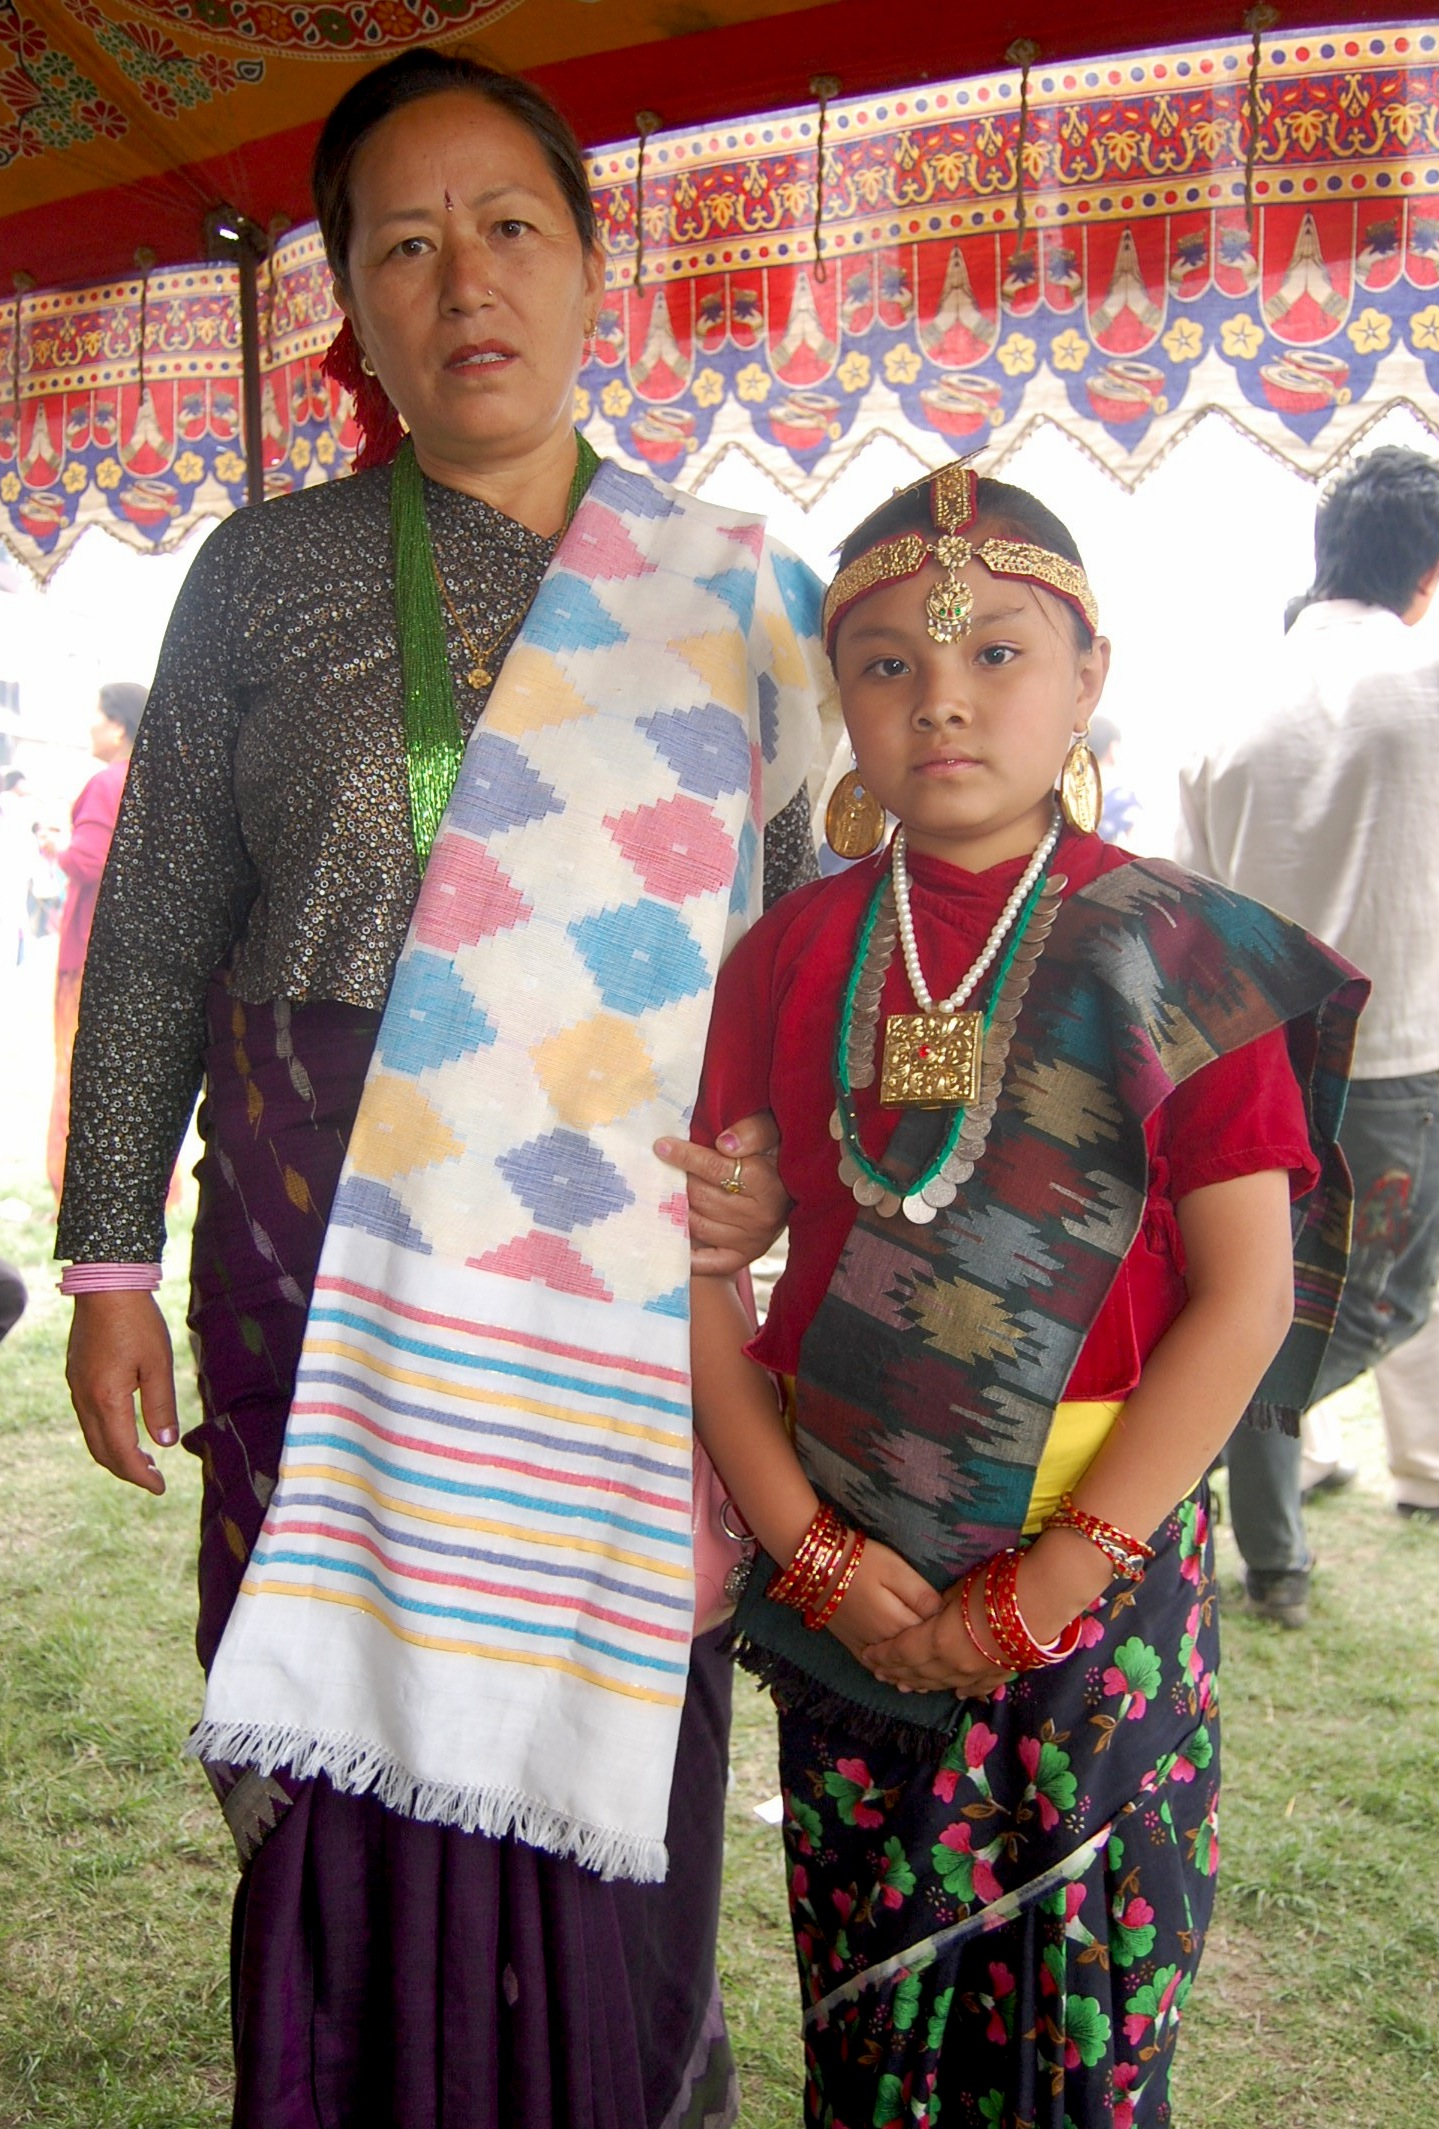 Description Kirati woman with a girl in traditional costume, Nepal.jpg